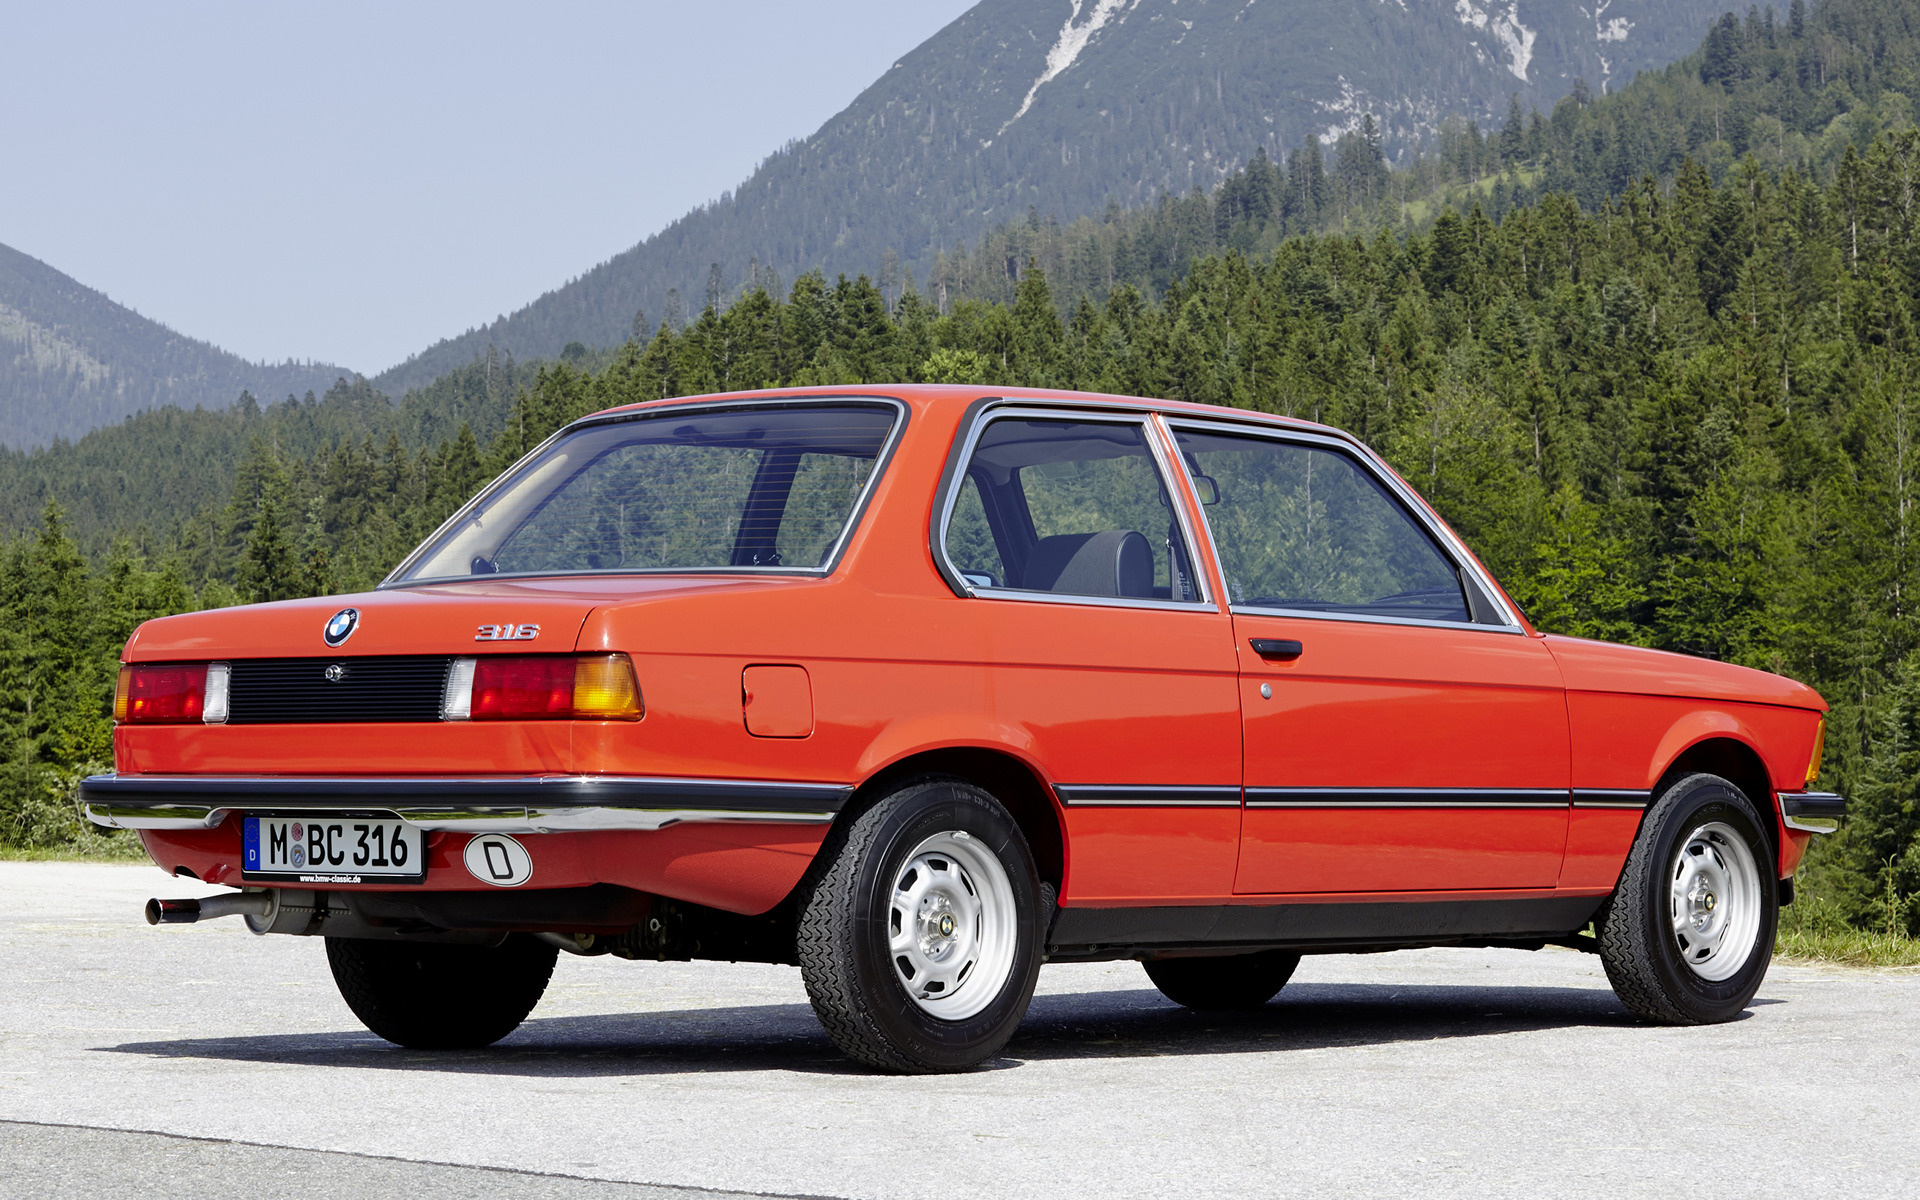 BMW 3 series 316 1979 photo - 4